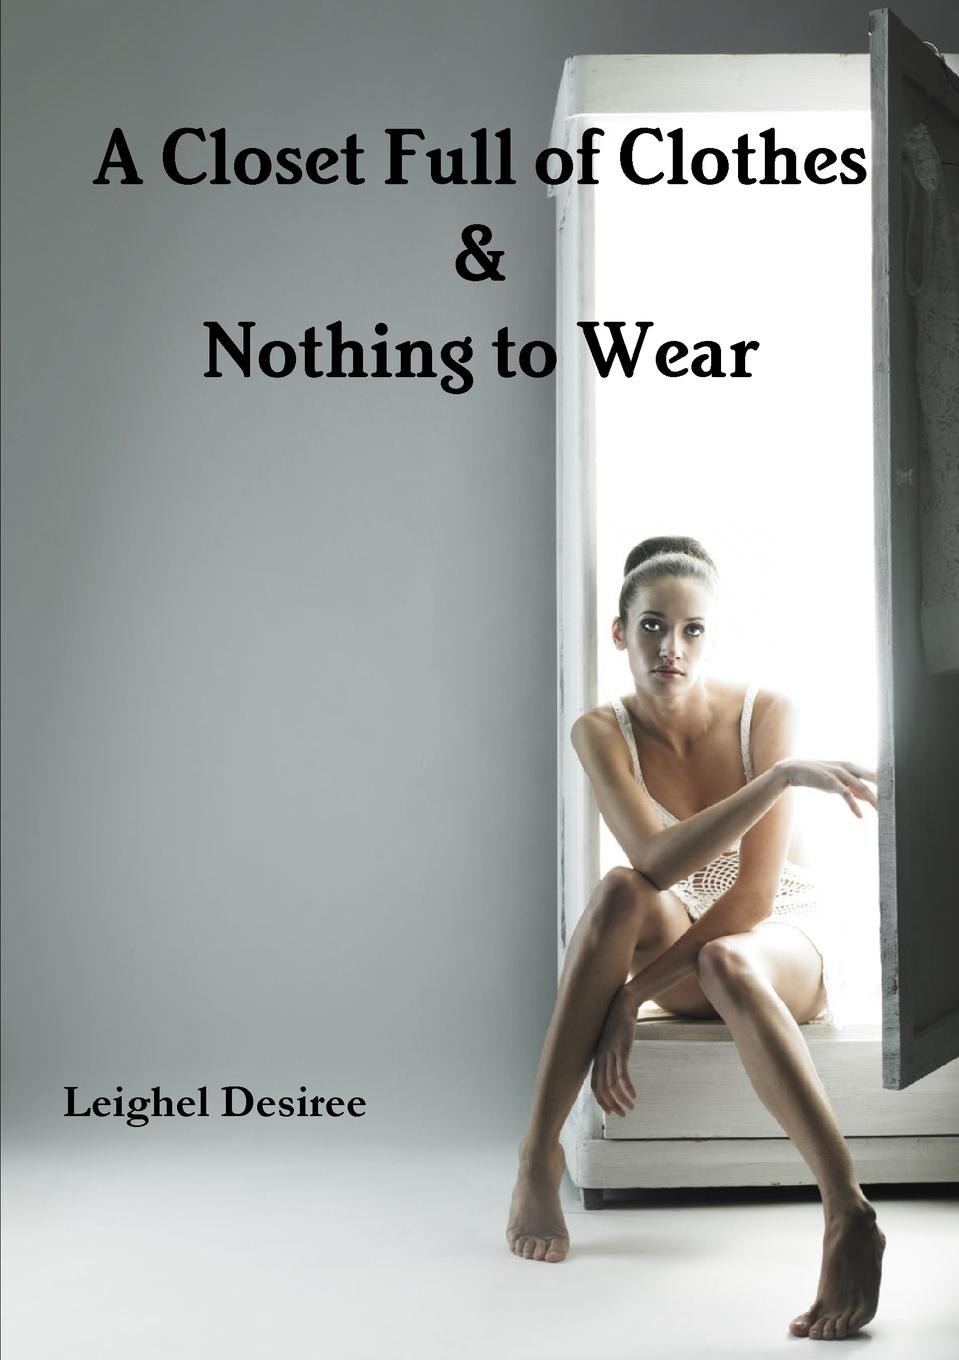 Leighel Desiree A Closet Full of Clothes . Nothing to Wear then we come to the end